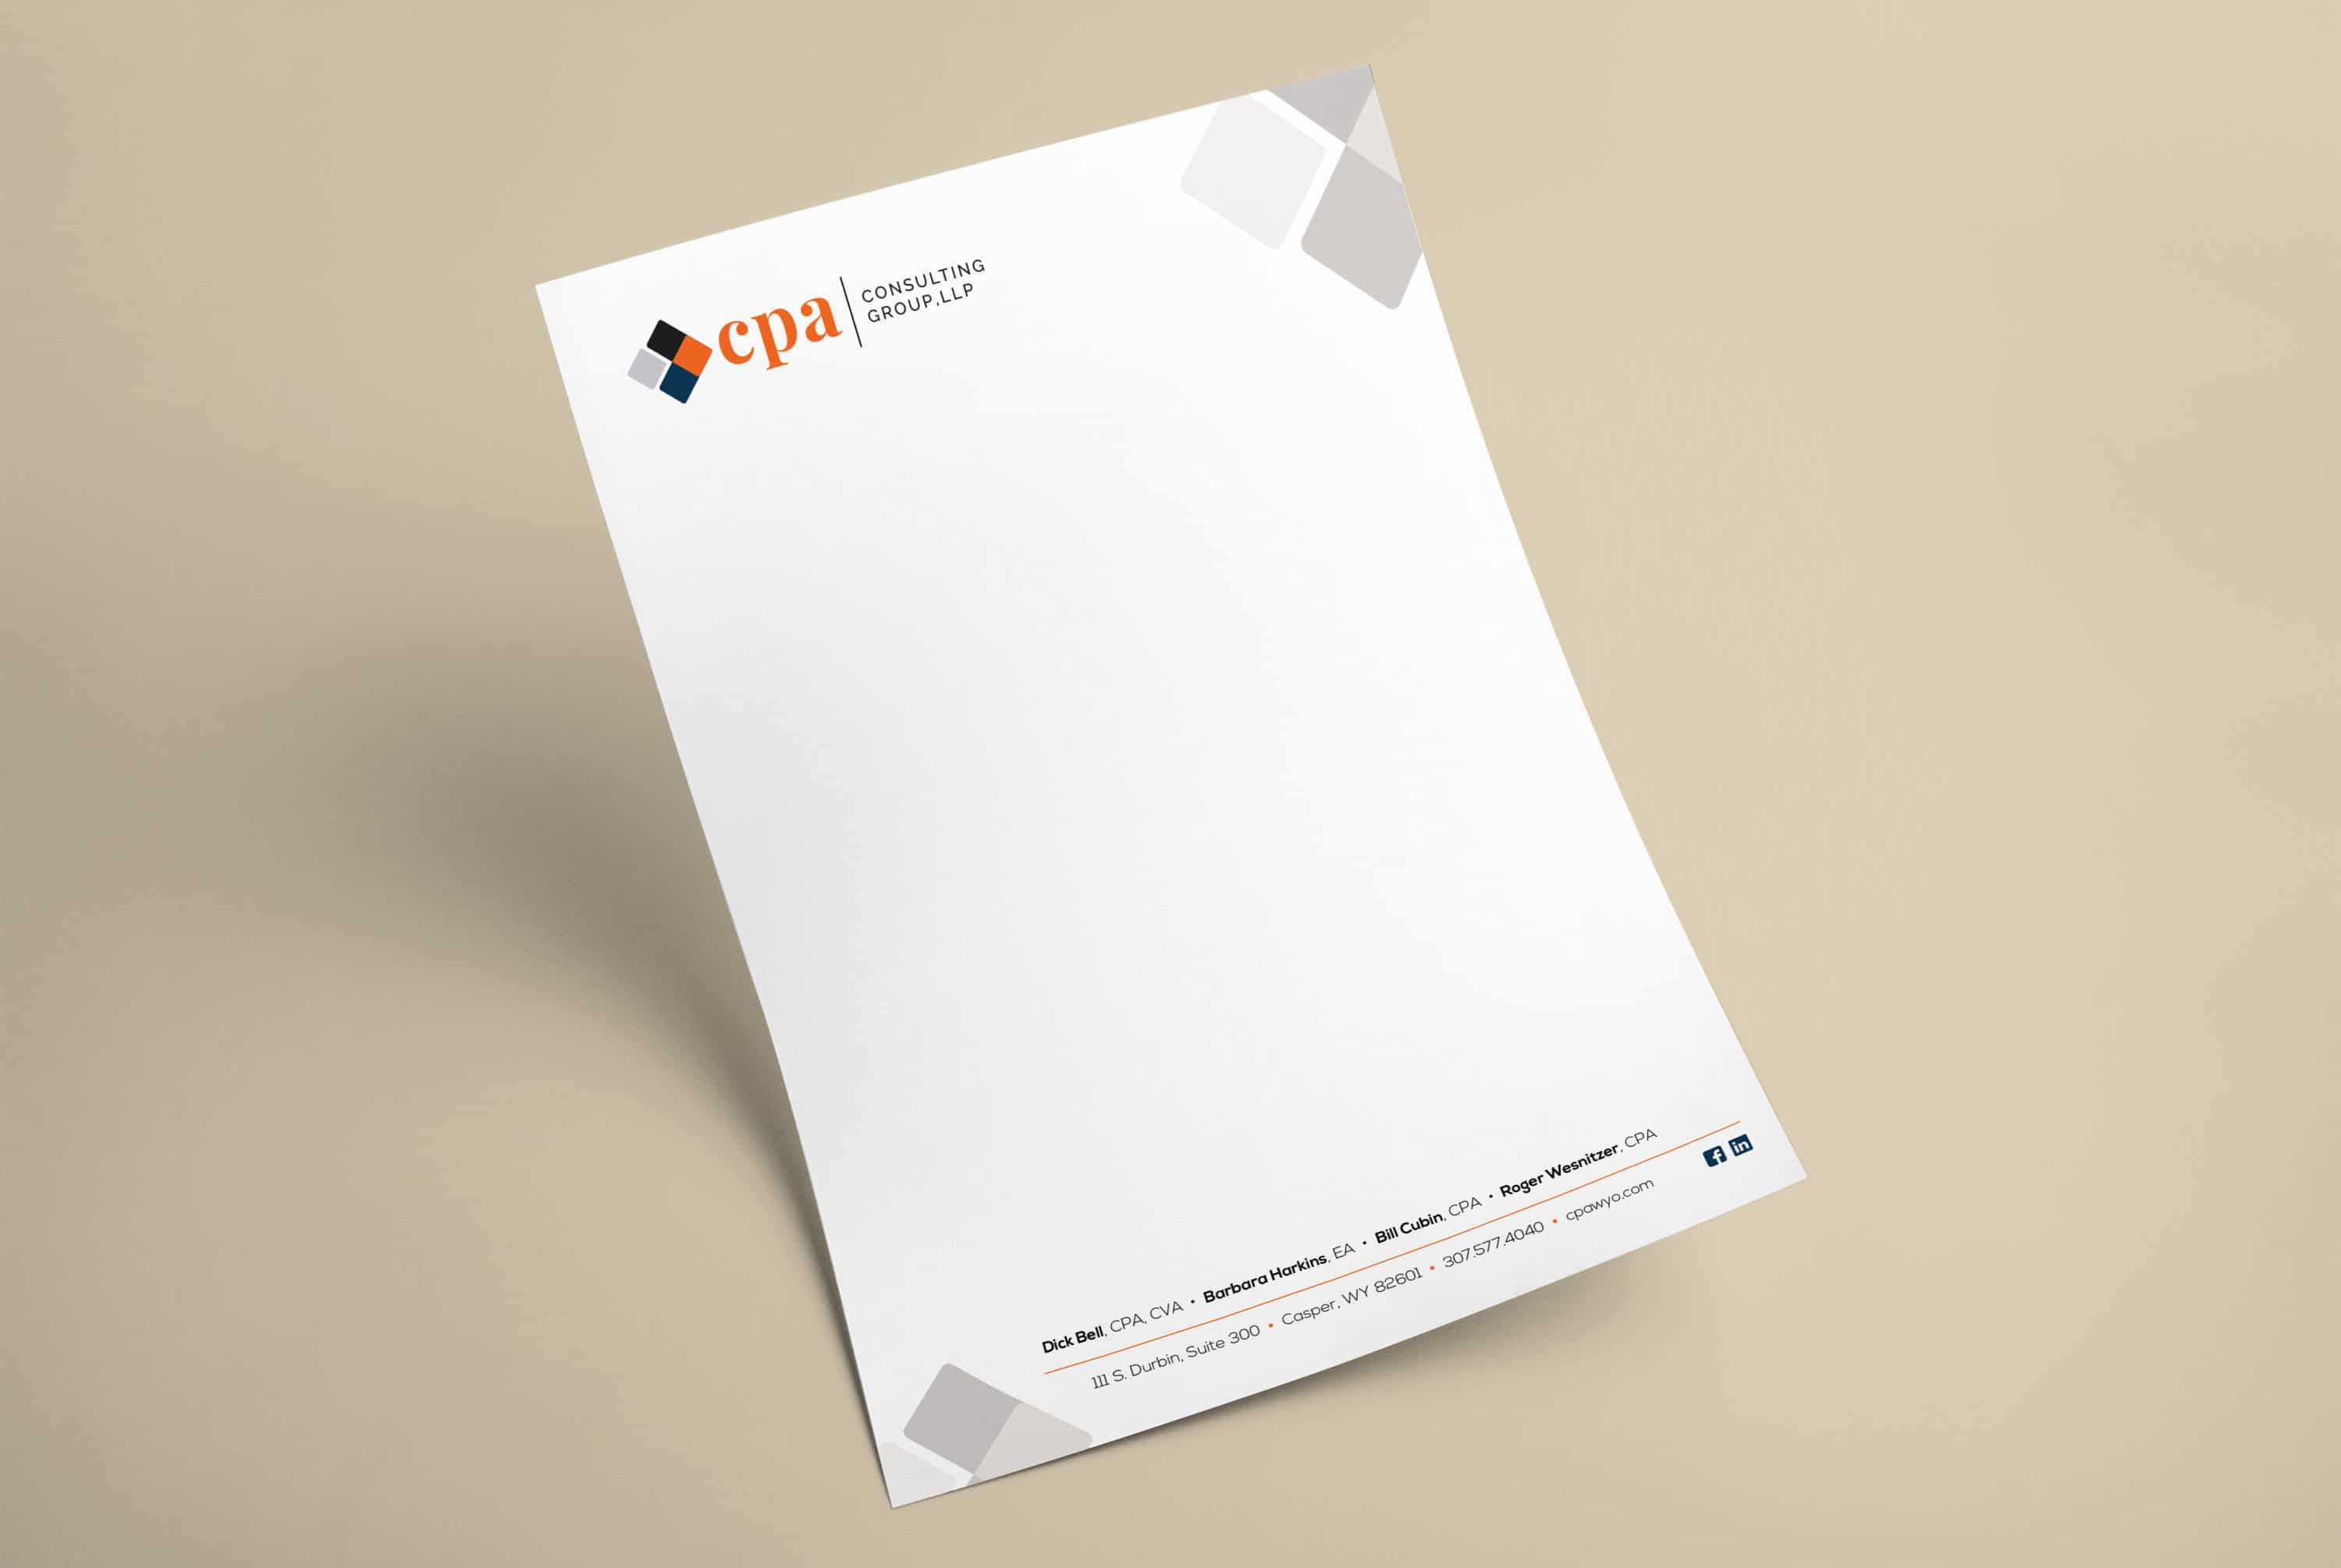 CPA Consulting Group Letterhead